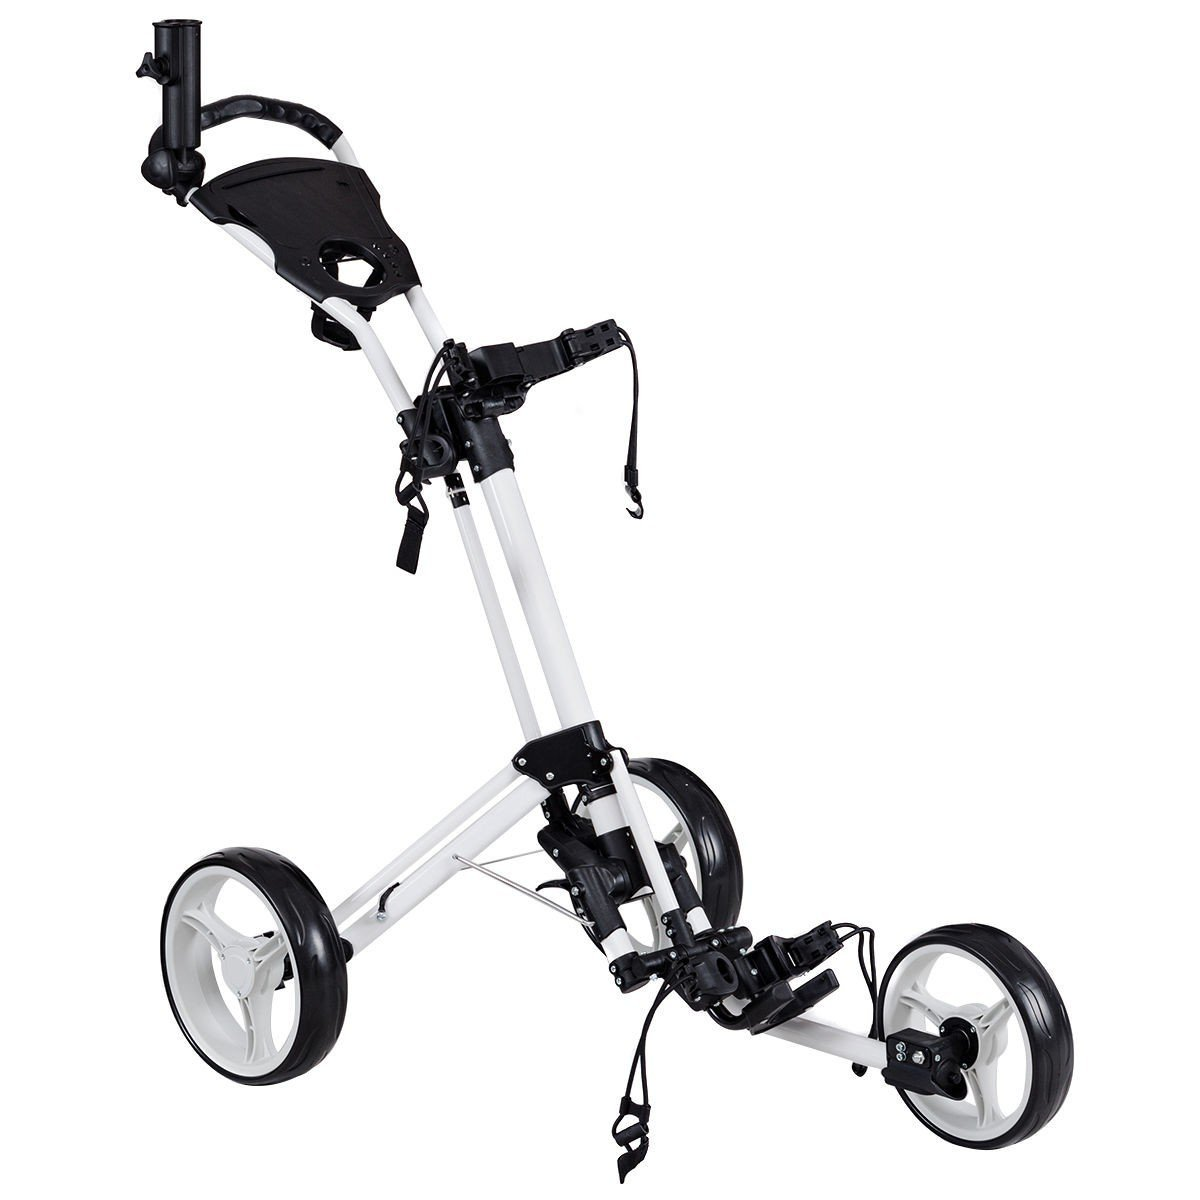 Foldable 3 Wheels Golf Pull Push Cart Trolley by Apontus